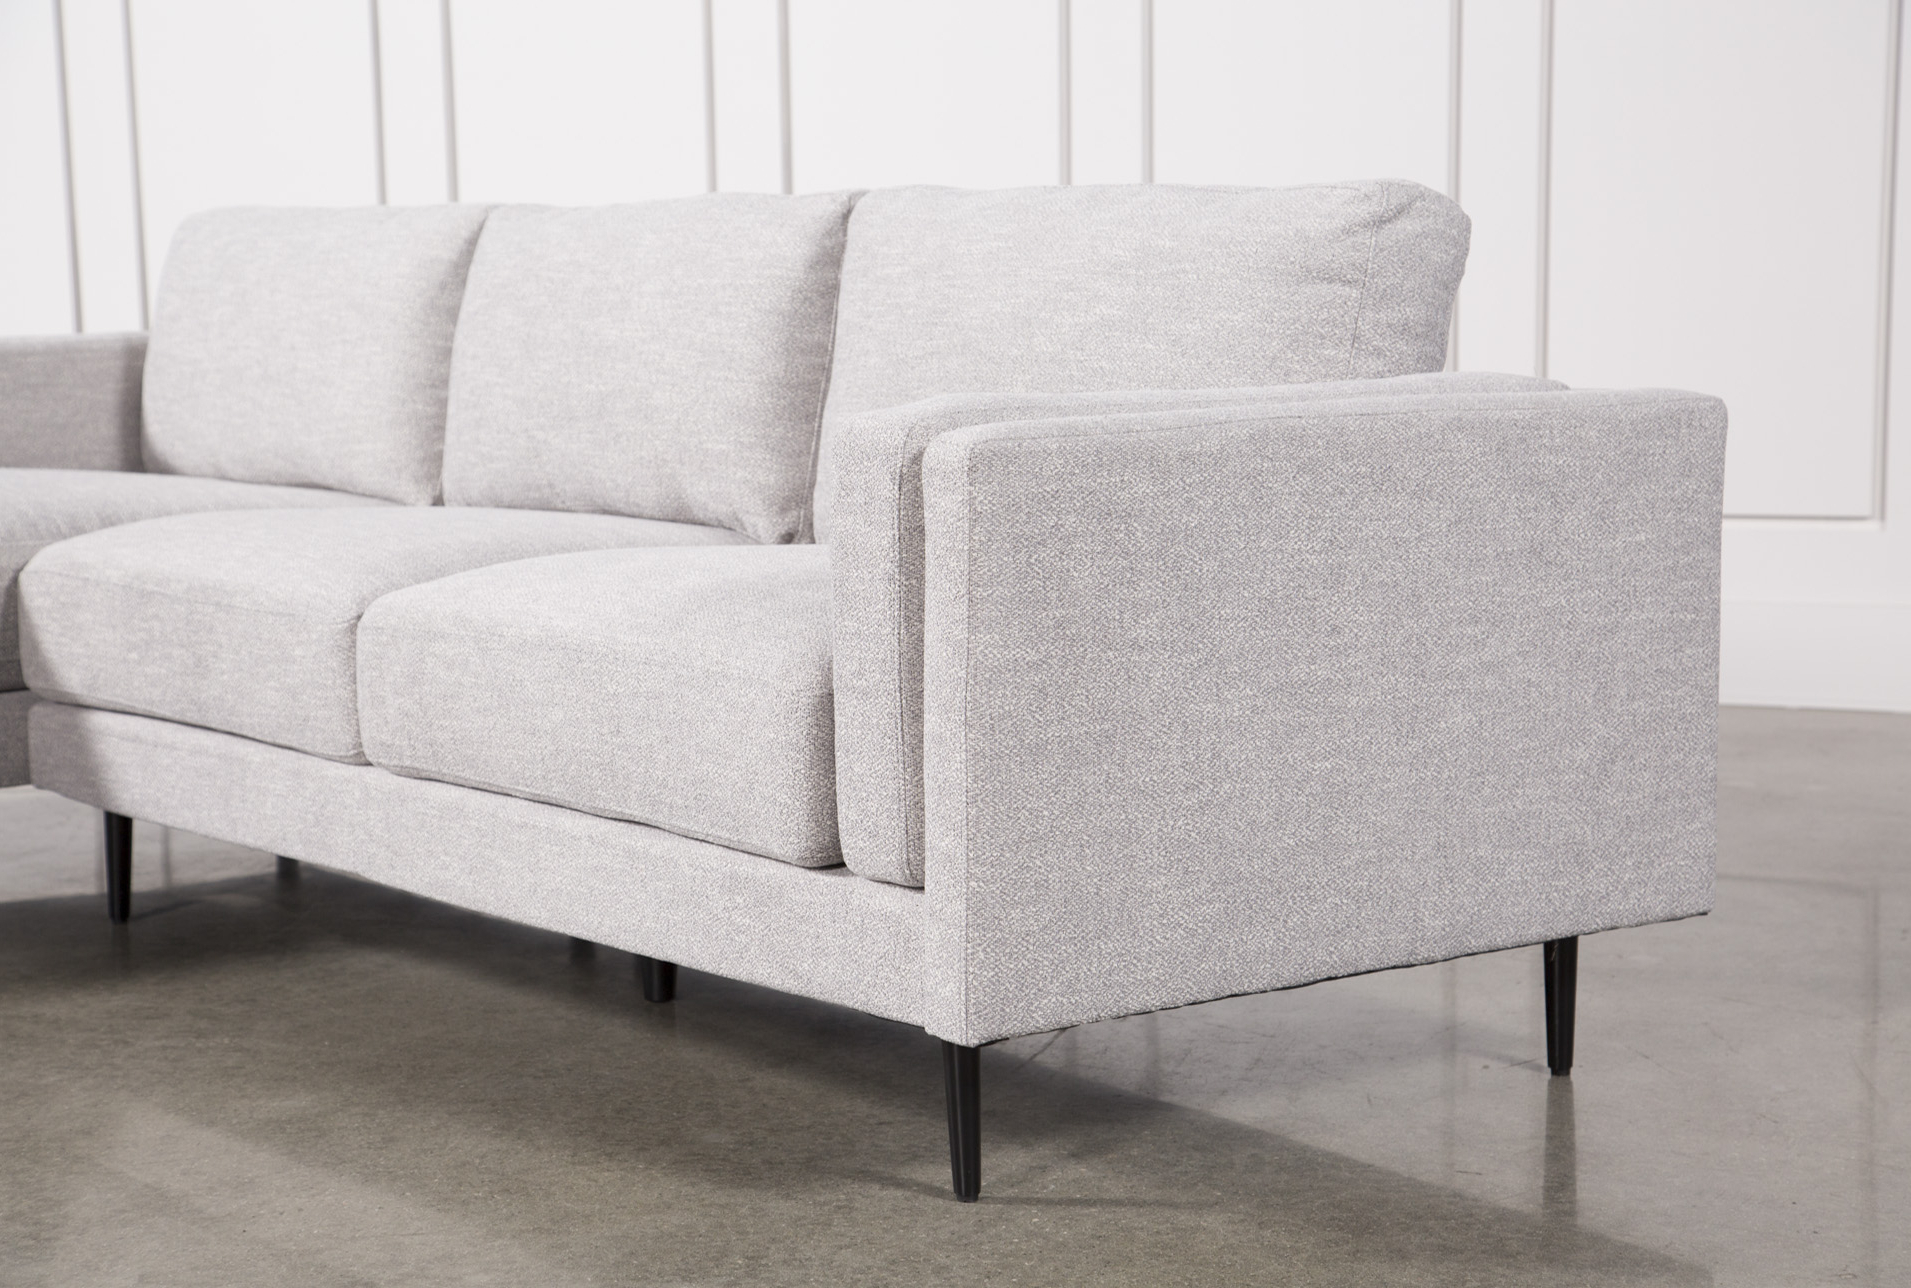 Aquarius Light Grey 2 Piece Sectional W/raf Chaise (View 6 of 20)